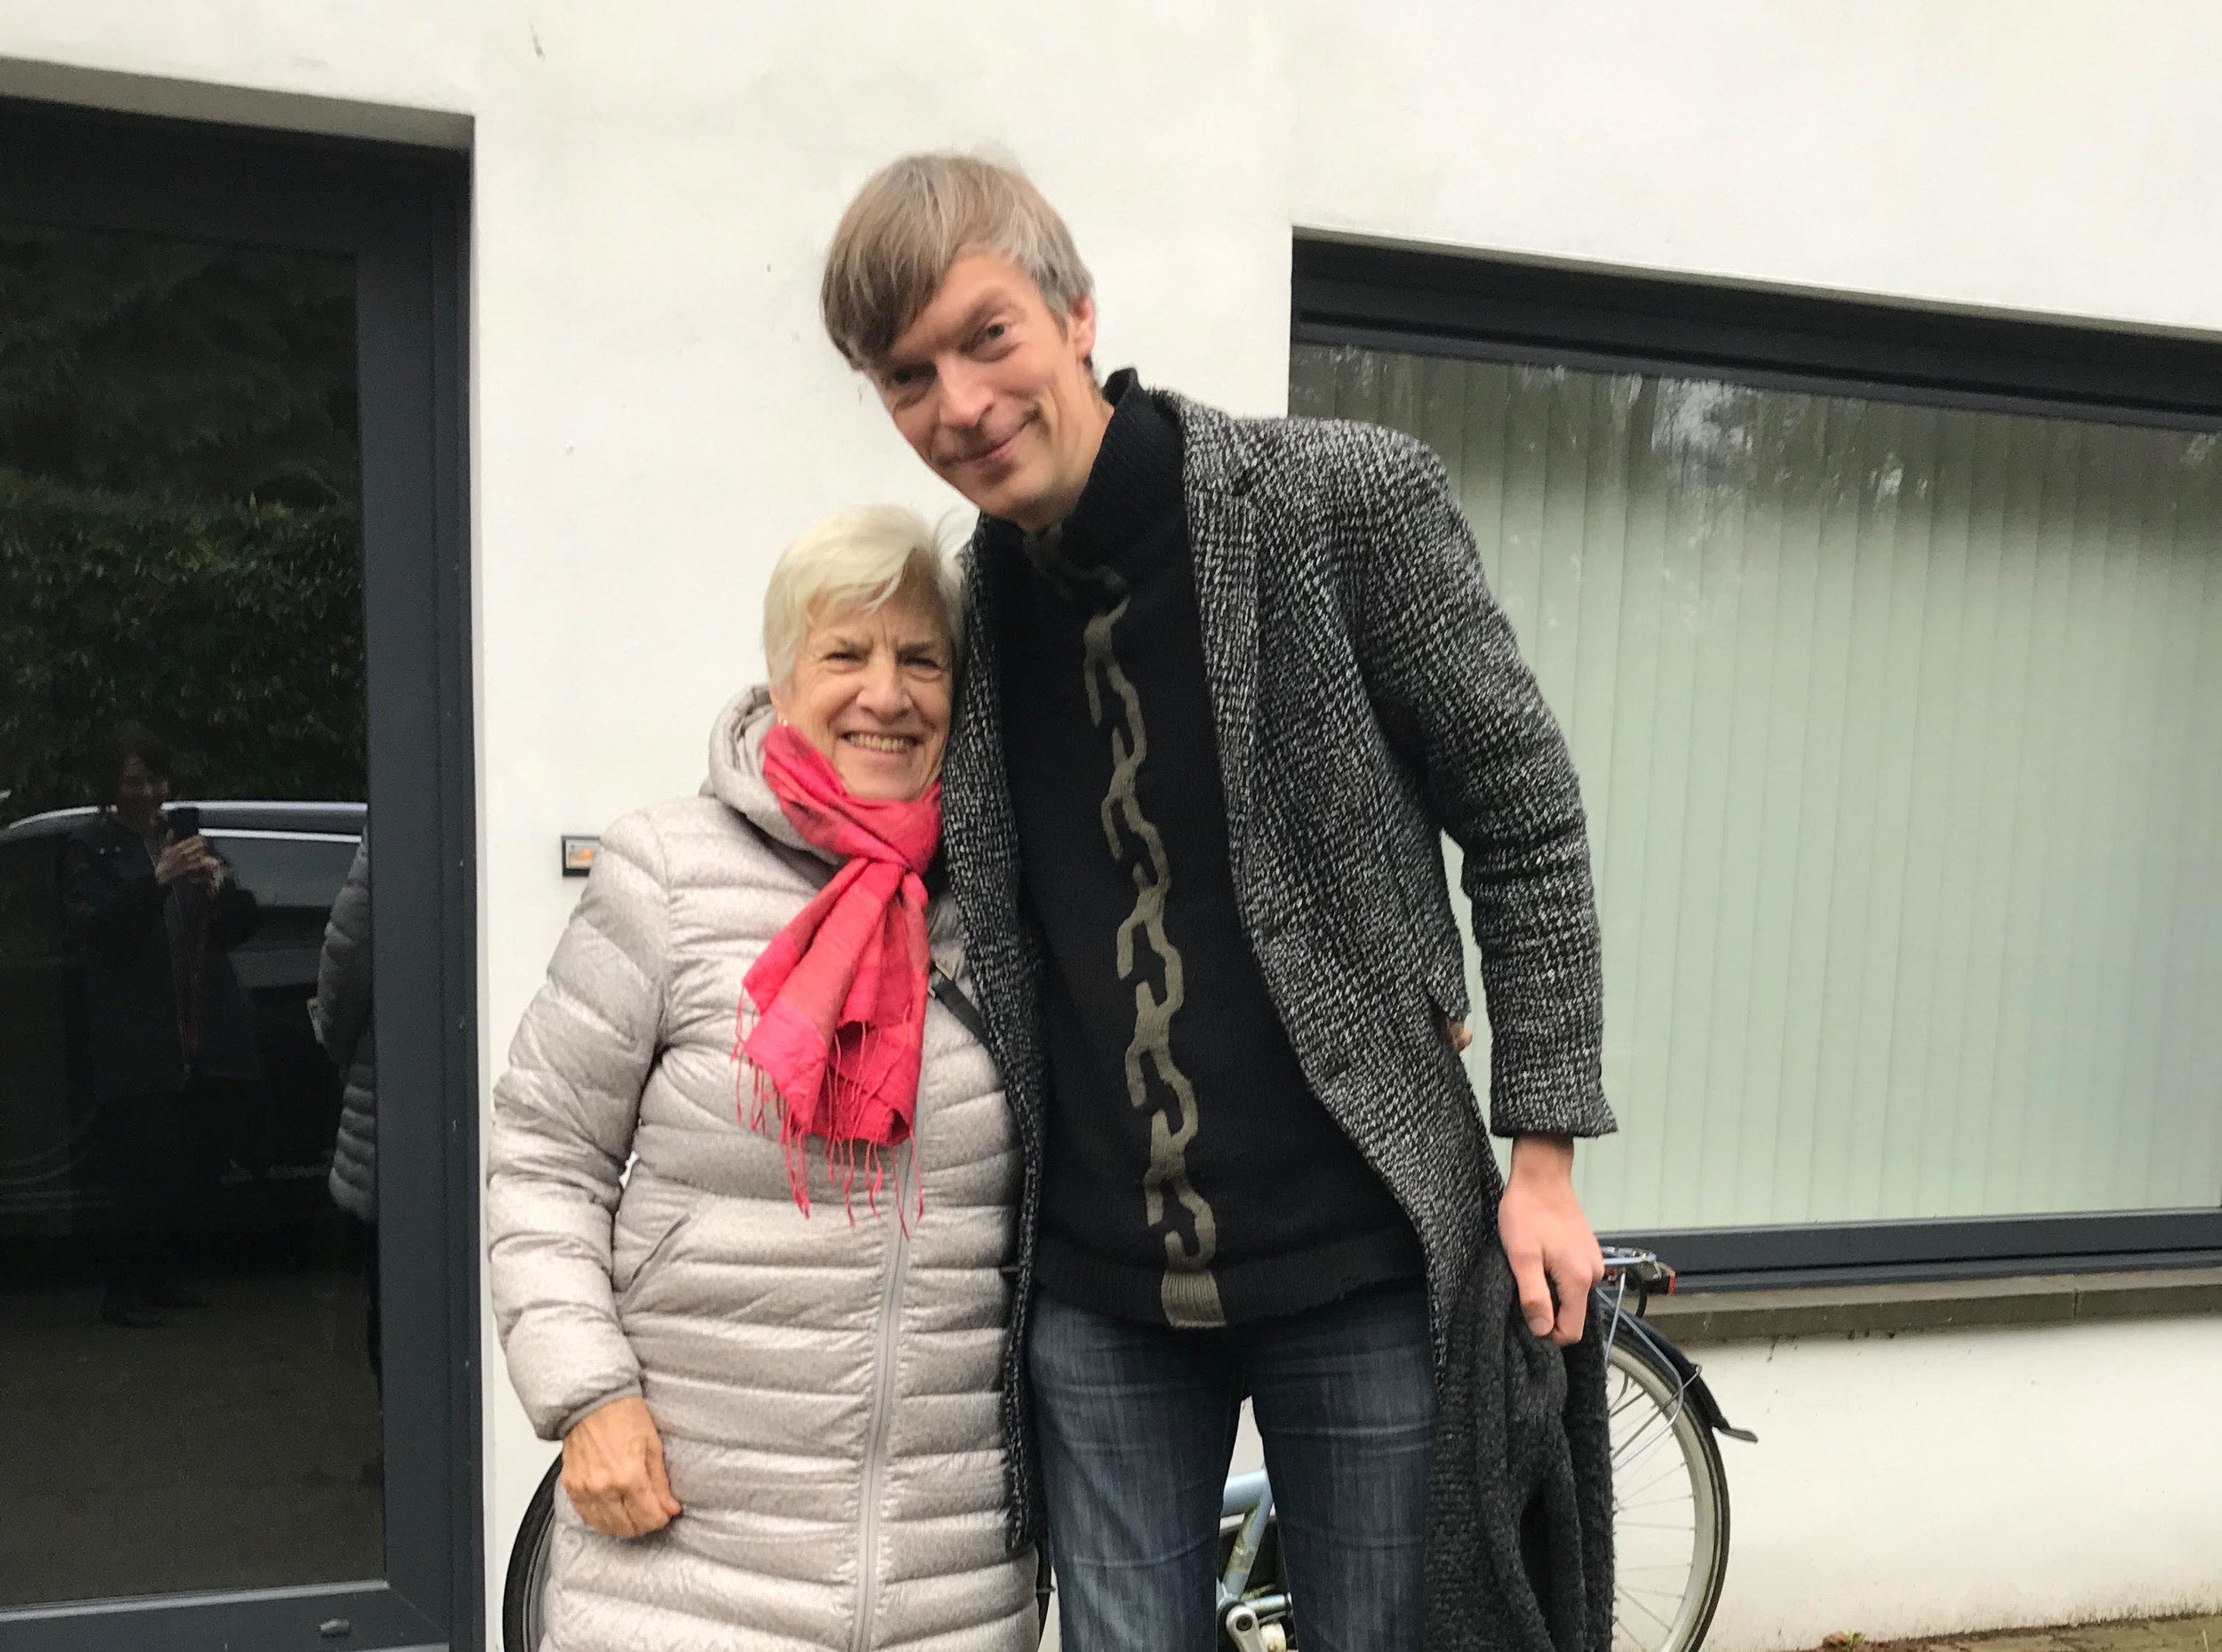 Betsy met up with Roel Arkesteijn of the Dutch Art Institute in Venice to discuss a promising project lead (2019).